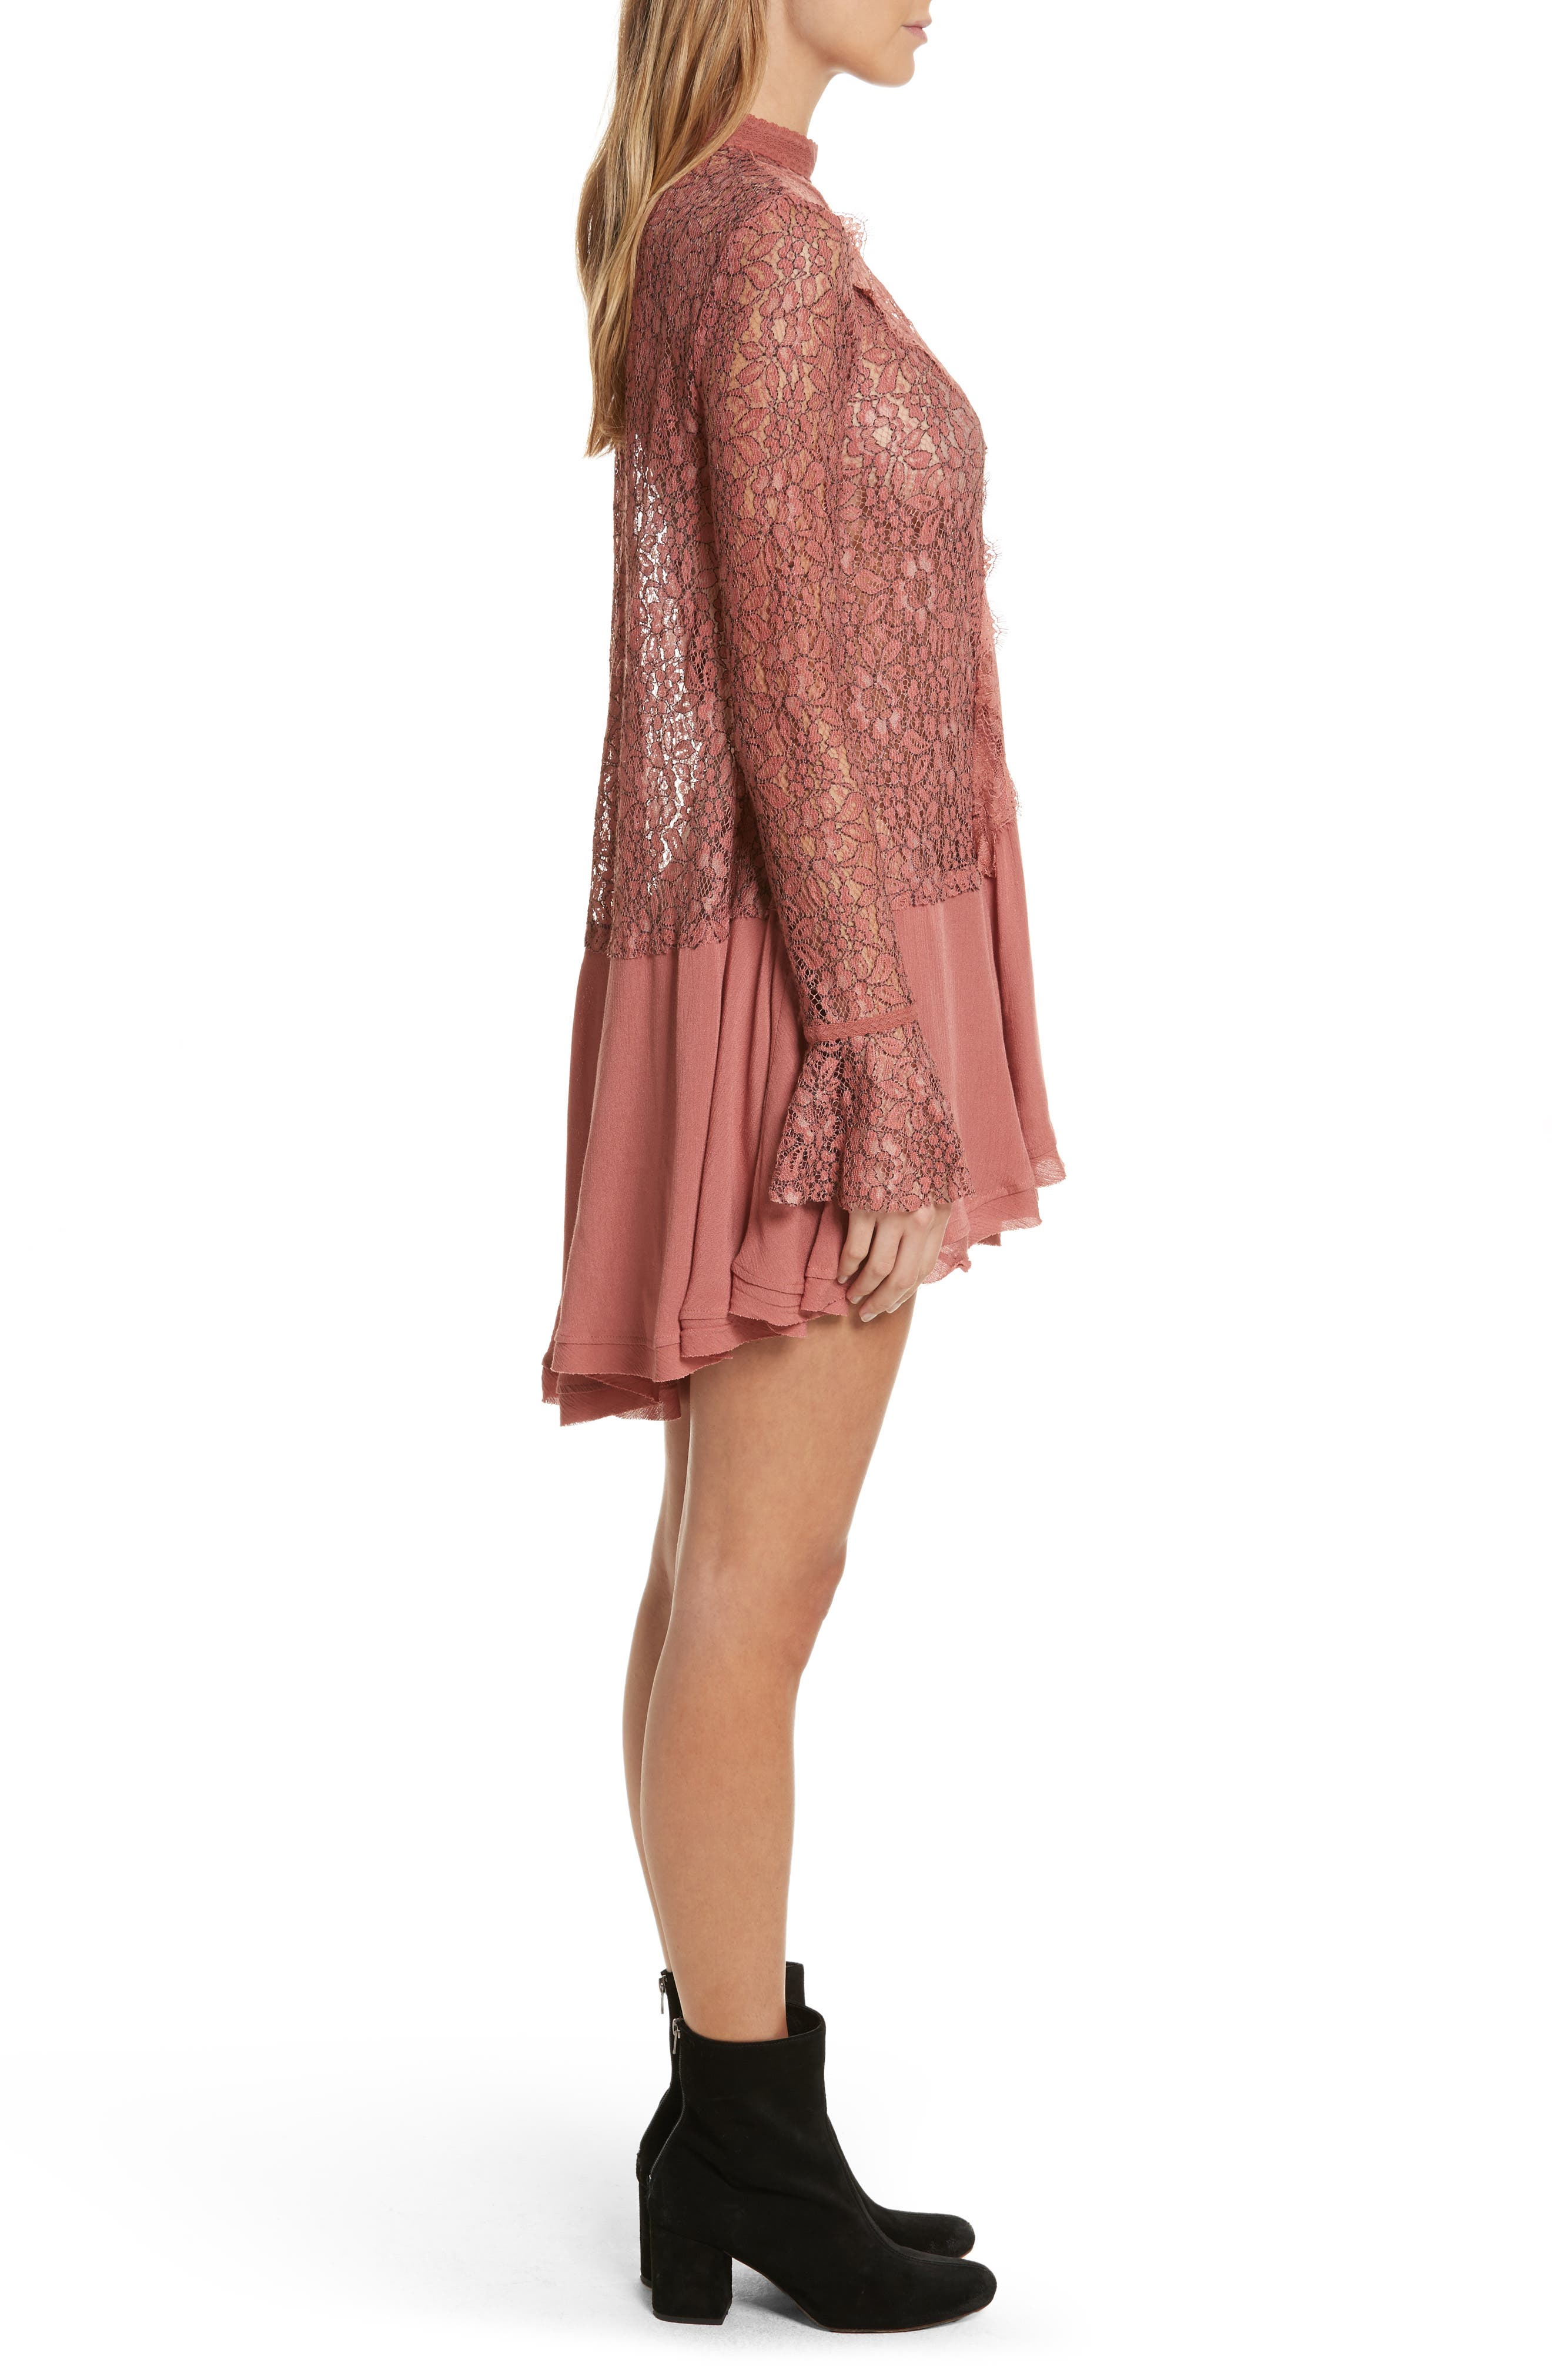 FREE PEOPLE,                             New Tell Tale Lace Minidress,                             Alternate thumbnail 3, color,                             605